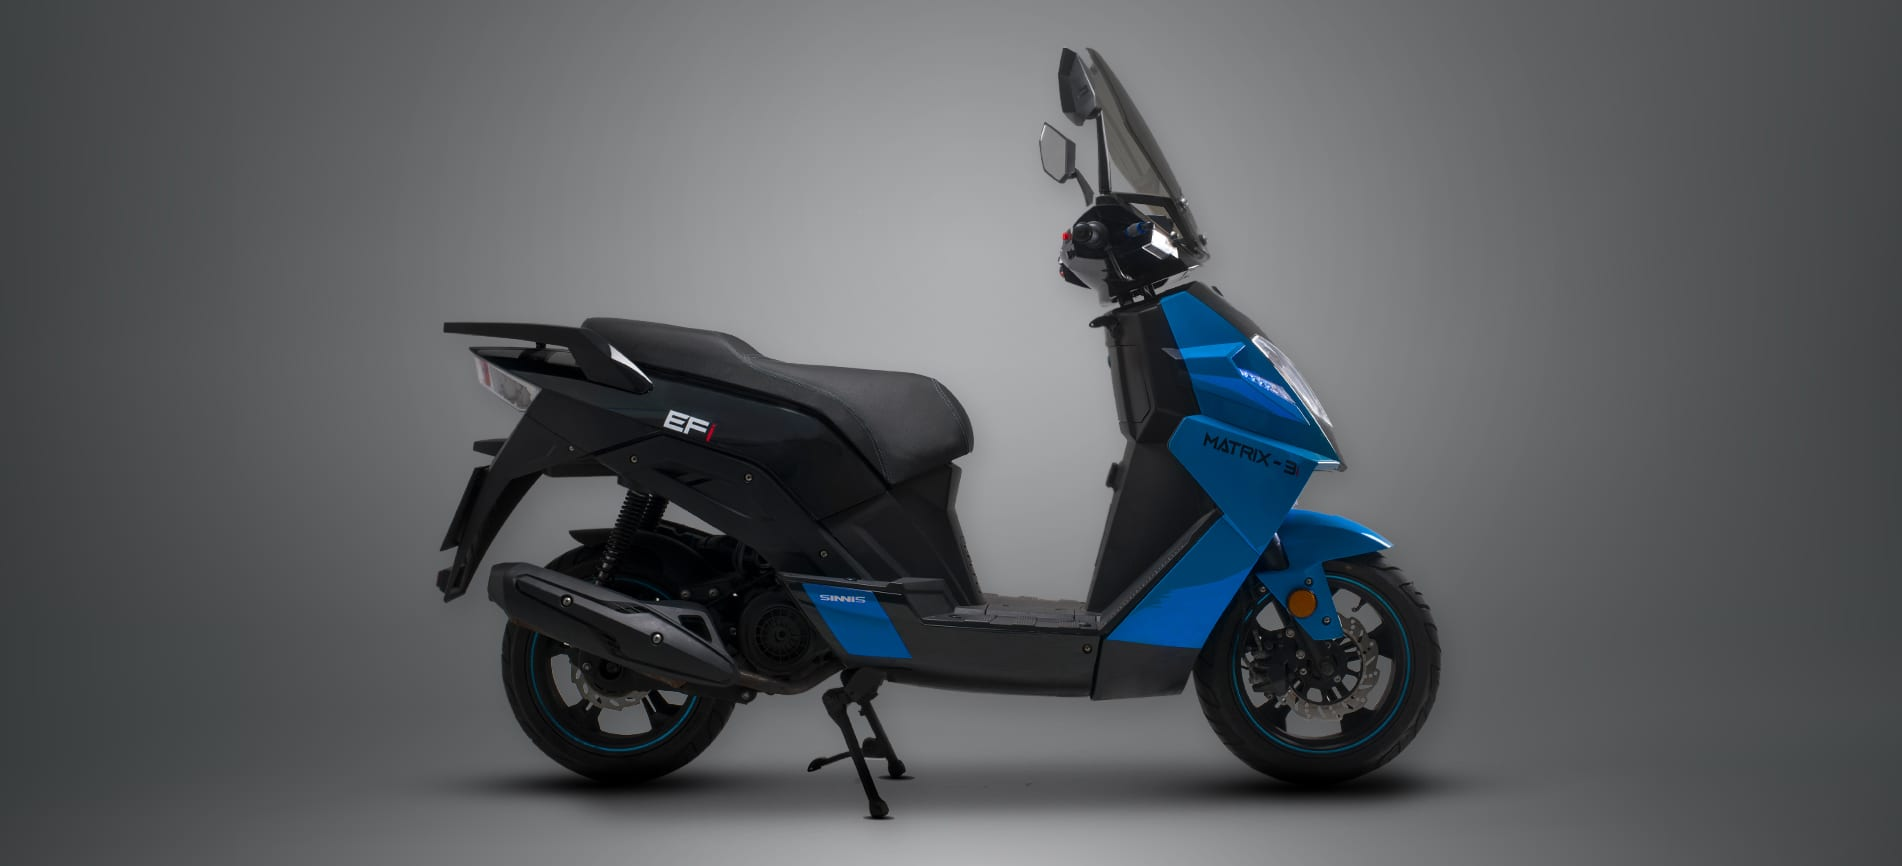 Sinnis Matrix 3i 125cc Scooter Moped Blue and Black